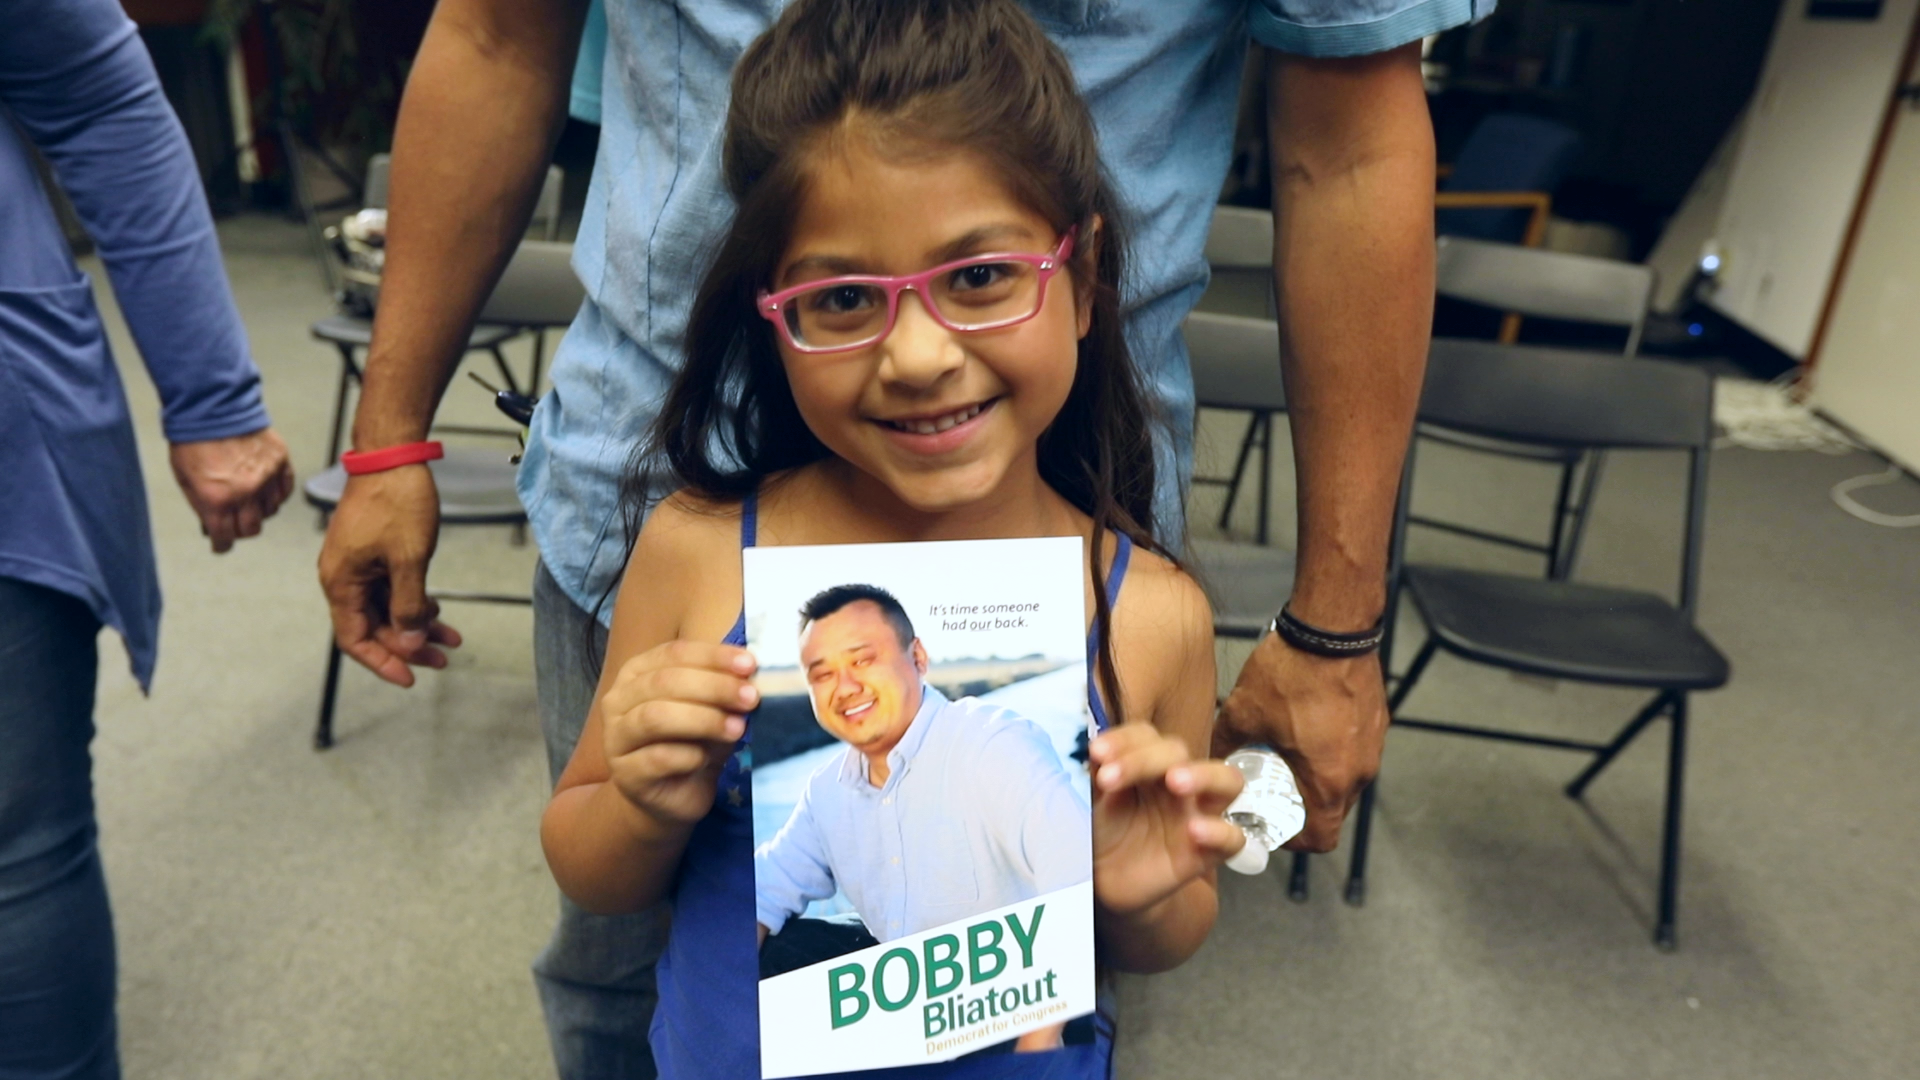 Bobby's incredible life story - Bobby serves as the top executive at Health and Life Organization, Inc. (H.A.L.O.) and Greater Fresno Health Organization (GFHO)….